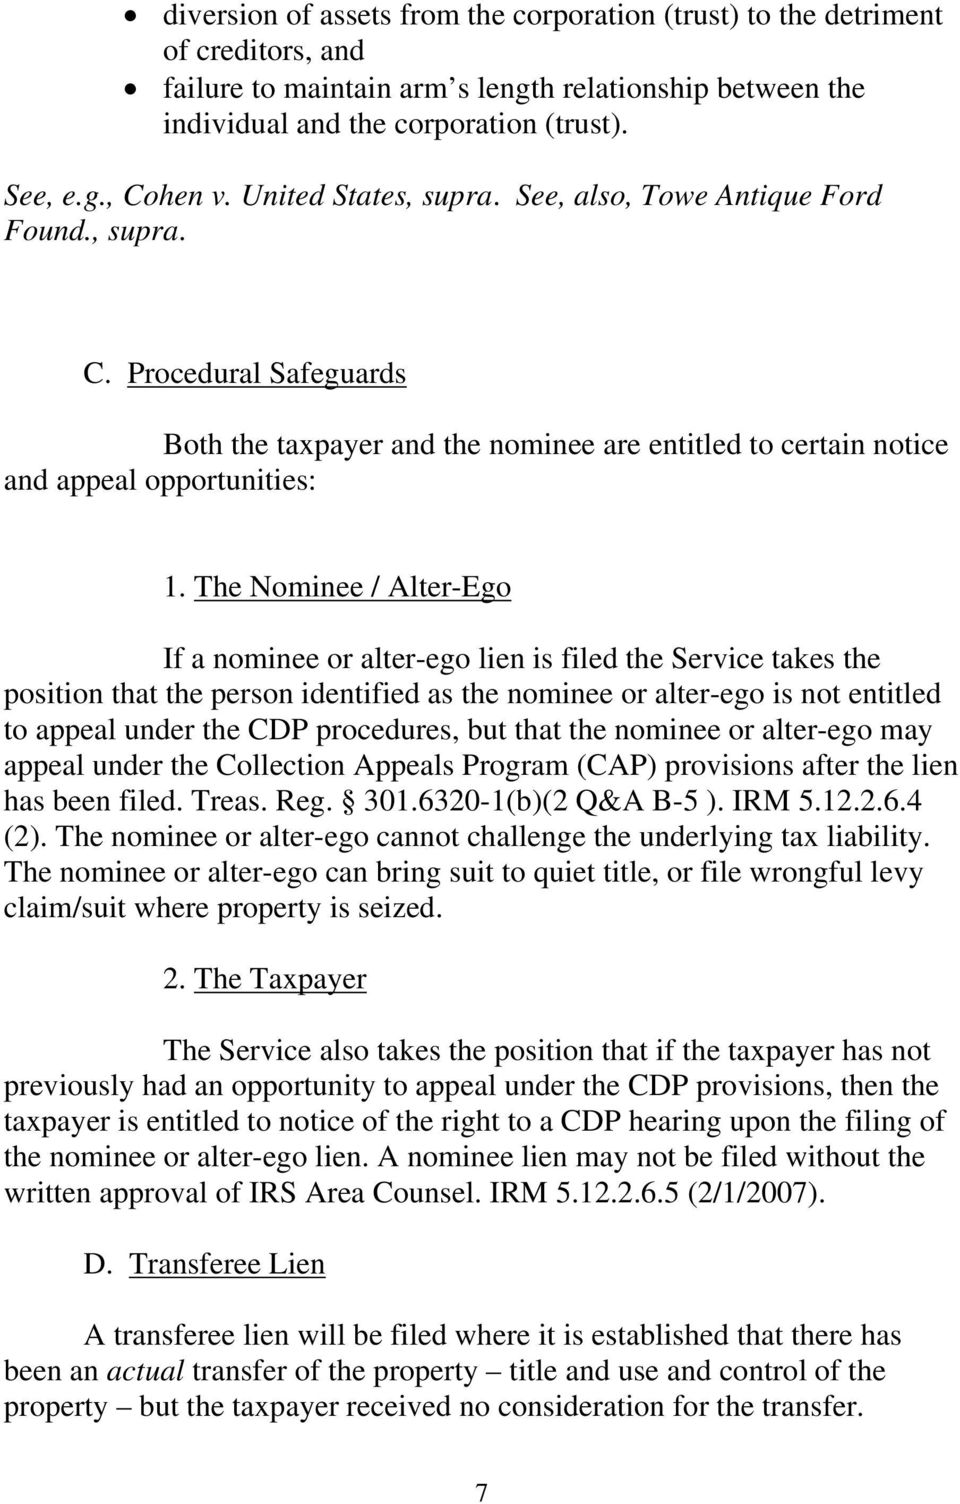 The Nominee / Alter-Ego If a nominee or alter-ego lien is filed the Service takes the position that the person identified as the nominee or alter-ego is not entitled to appeal under the CDP